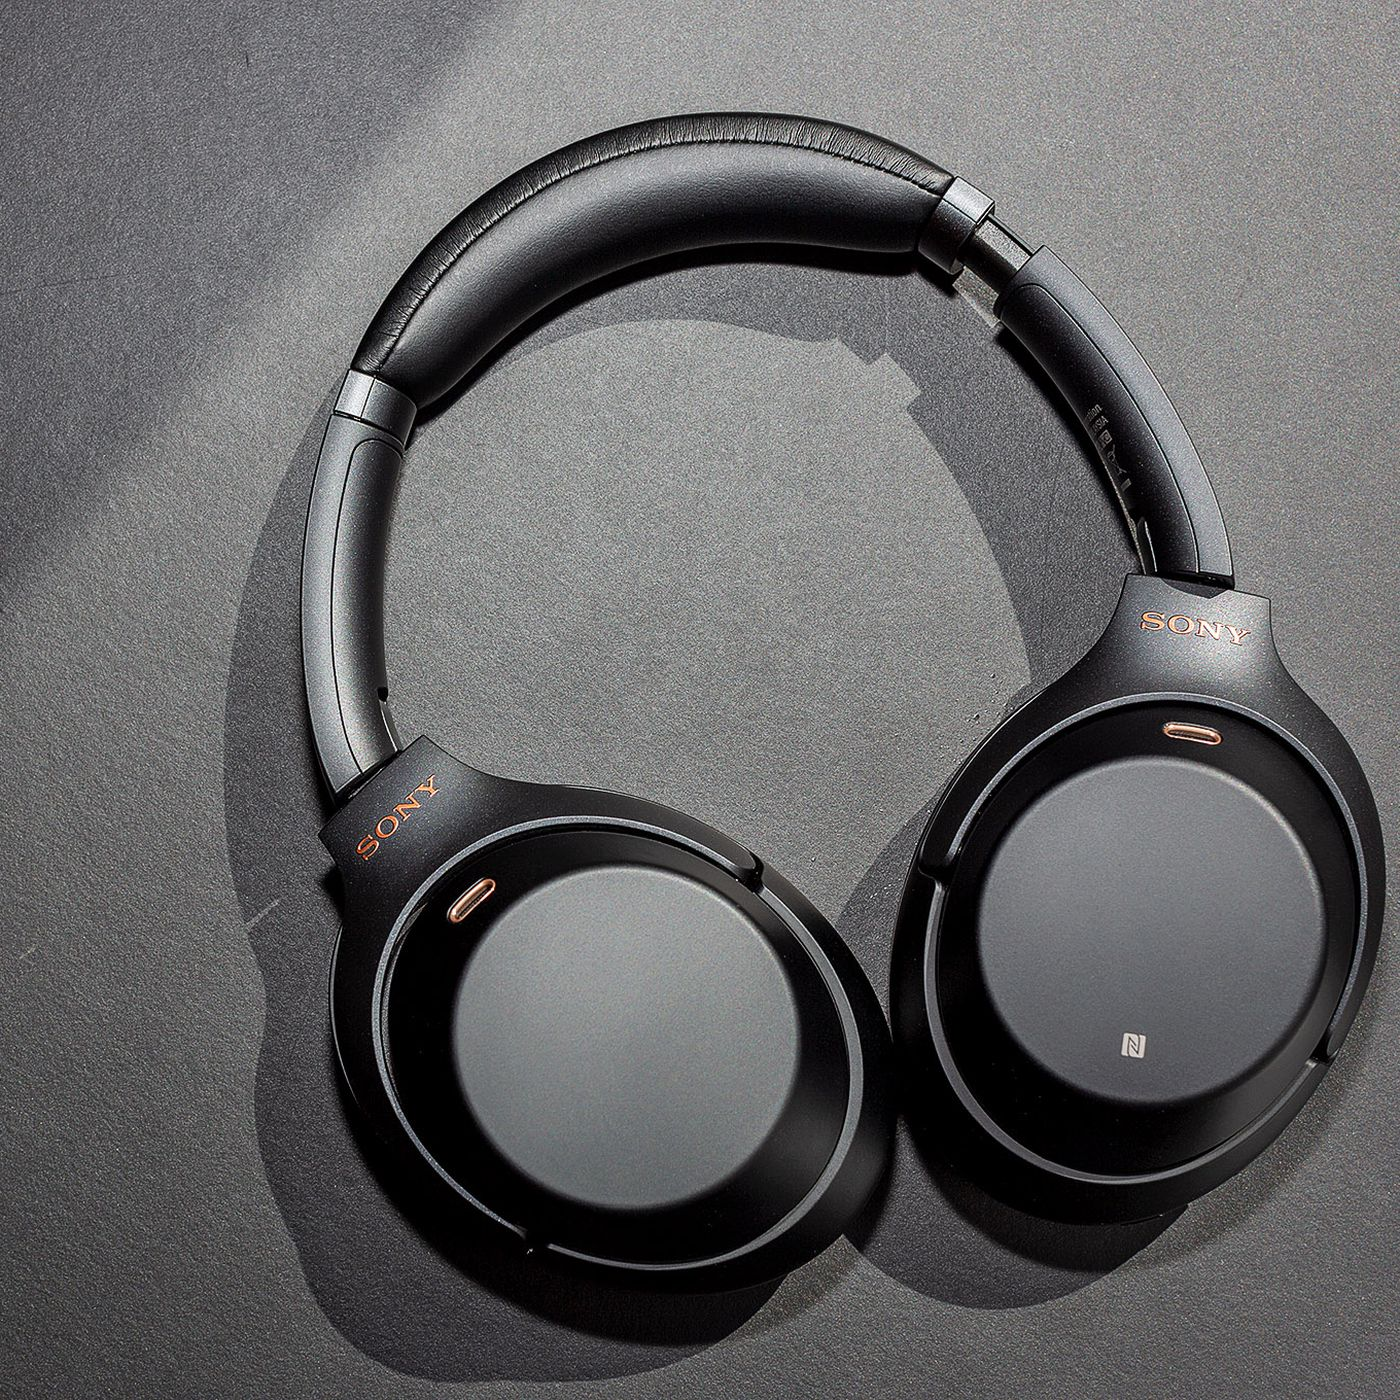 Sony S Wh 1000xm3 Wireless Headphones Are Just 220 At Woot The Verge